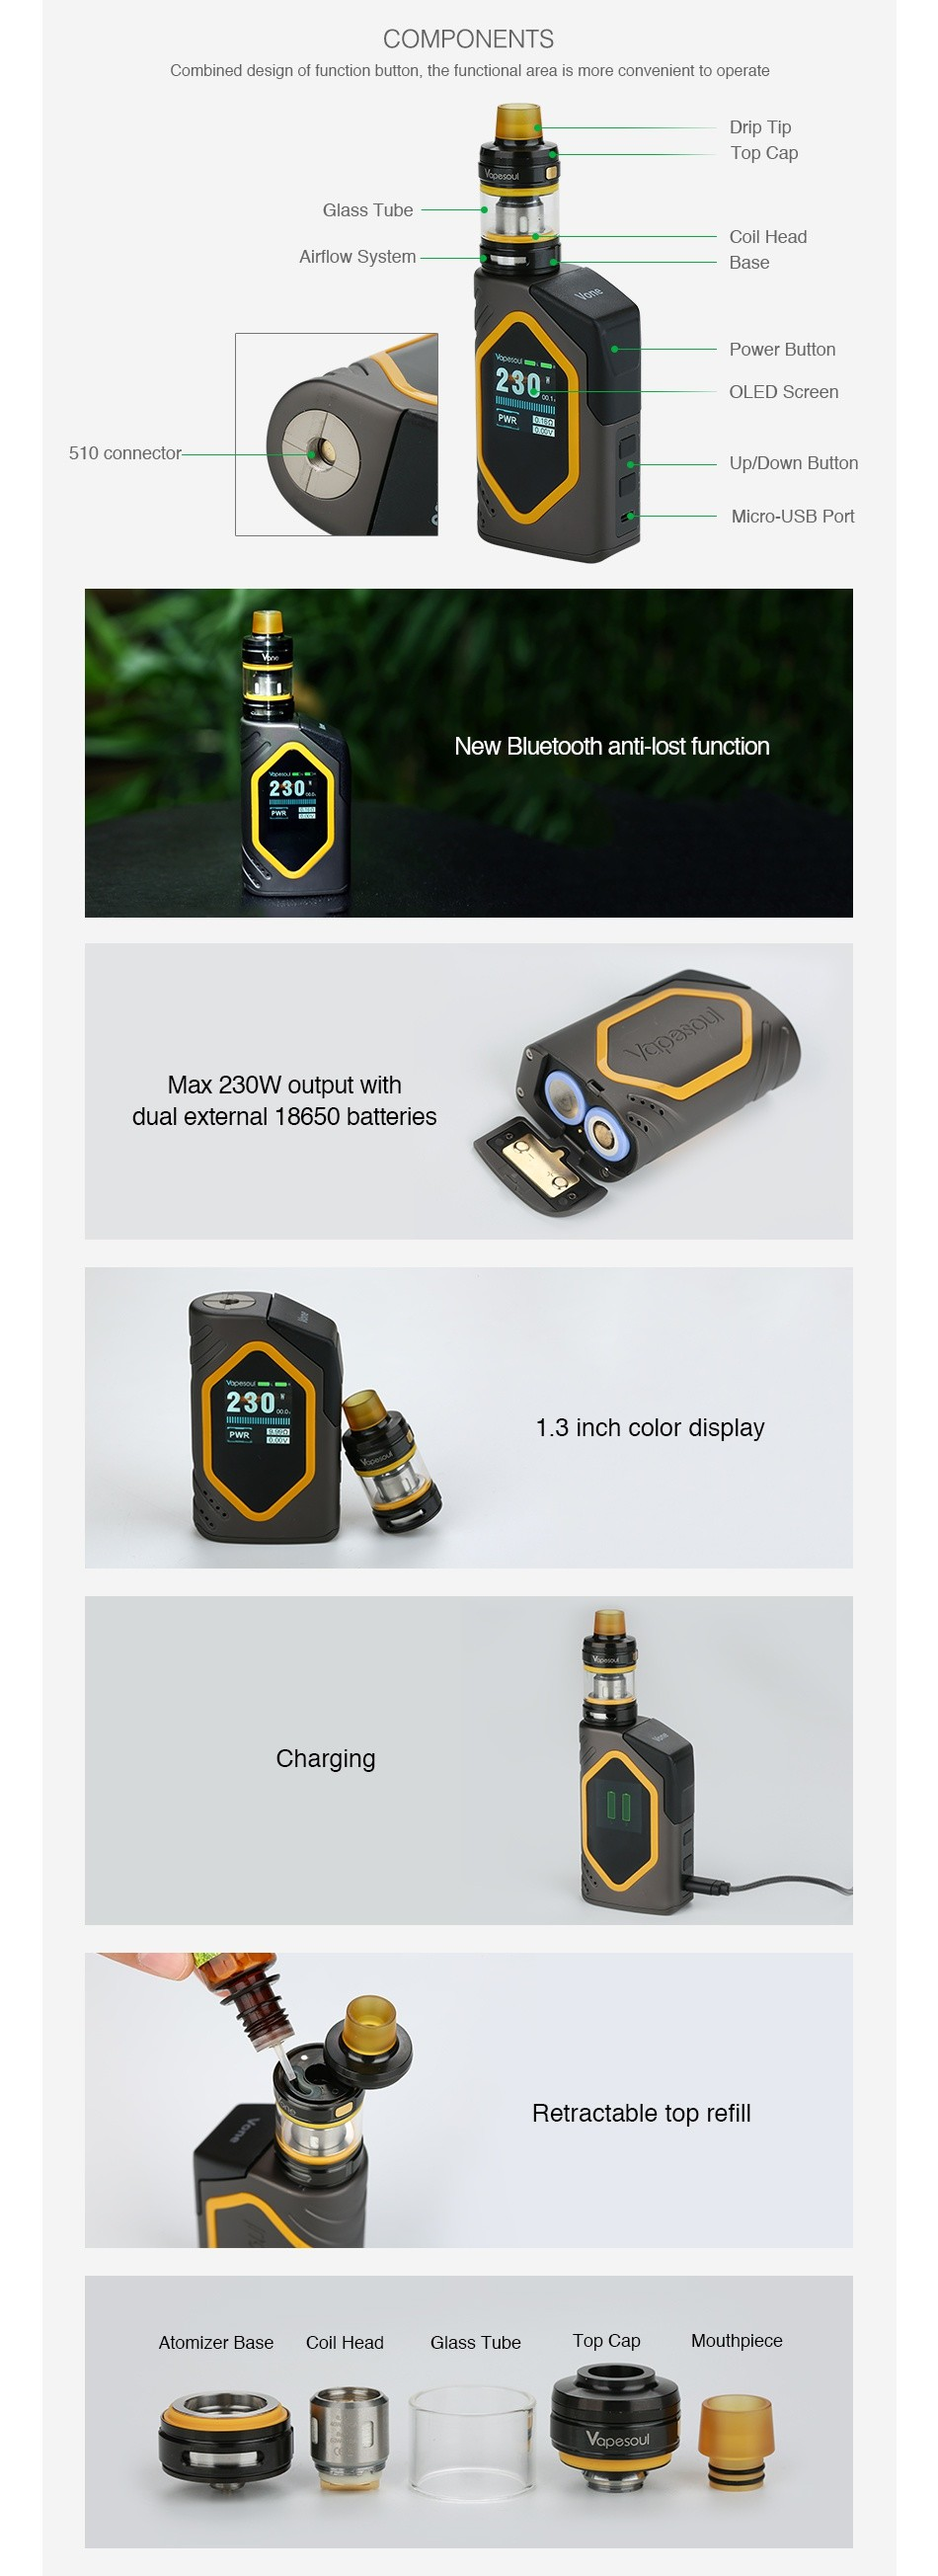 Vapesoul Vone 230W Bluetooth TC Kit COMPONENTS Combined design of function bution  the functiona area is more convenient to operate Airflow Systern Base Power Button 510 connector Up Down Buller New bluetooth anti lost function 230 Max 230W output with dual external 1 8650 batteries 1 3 inch color display Charging Retractable top refill Atomizer Base Coil I lead Top cap MolIthplccc e